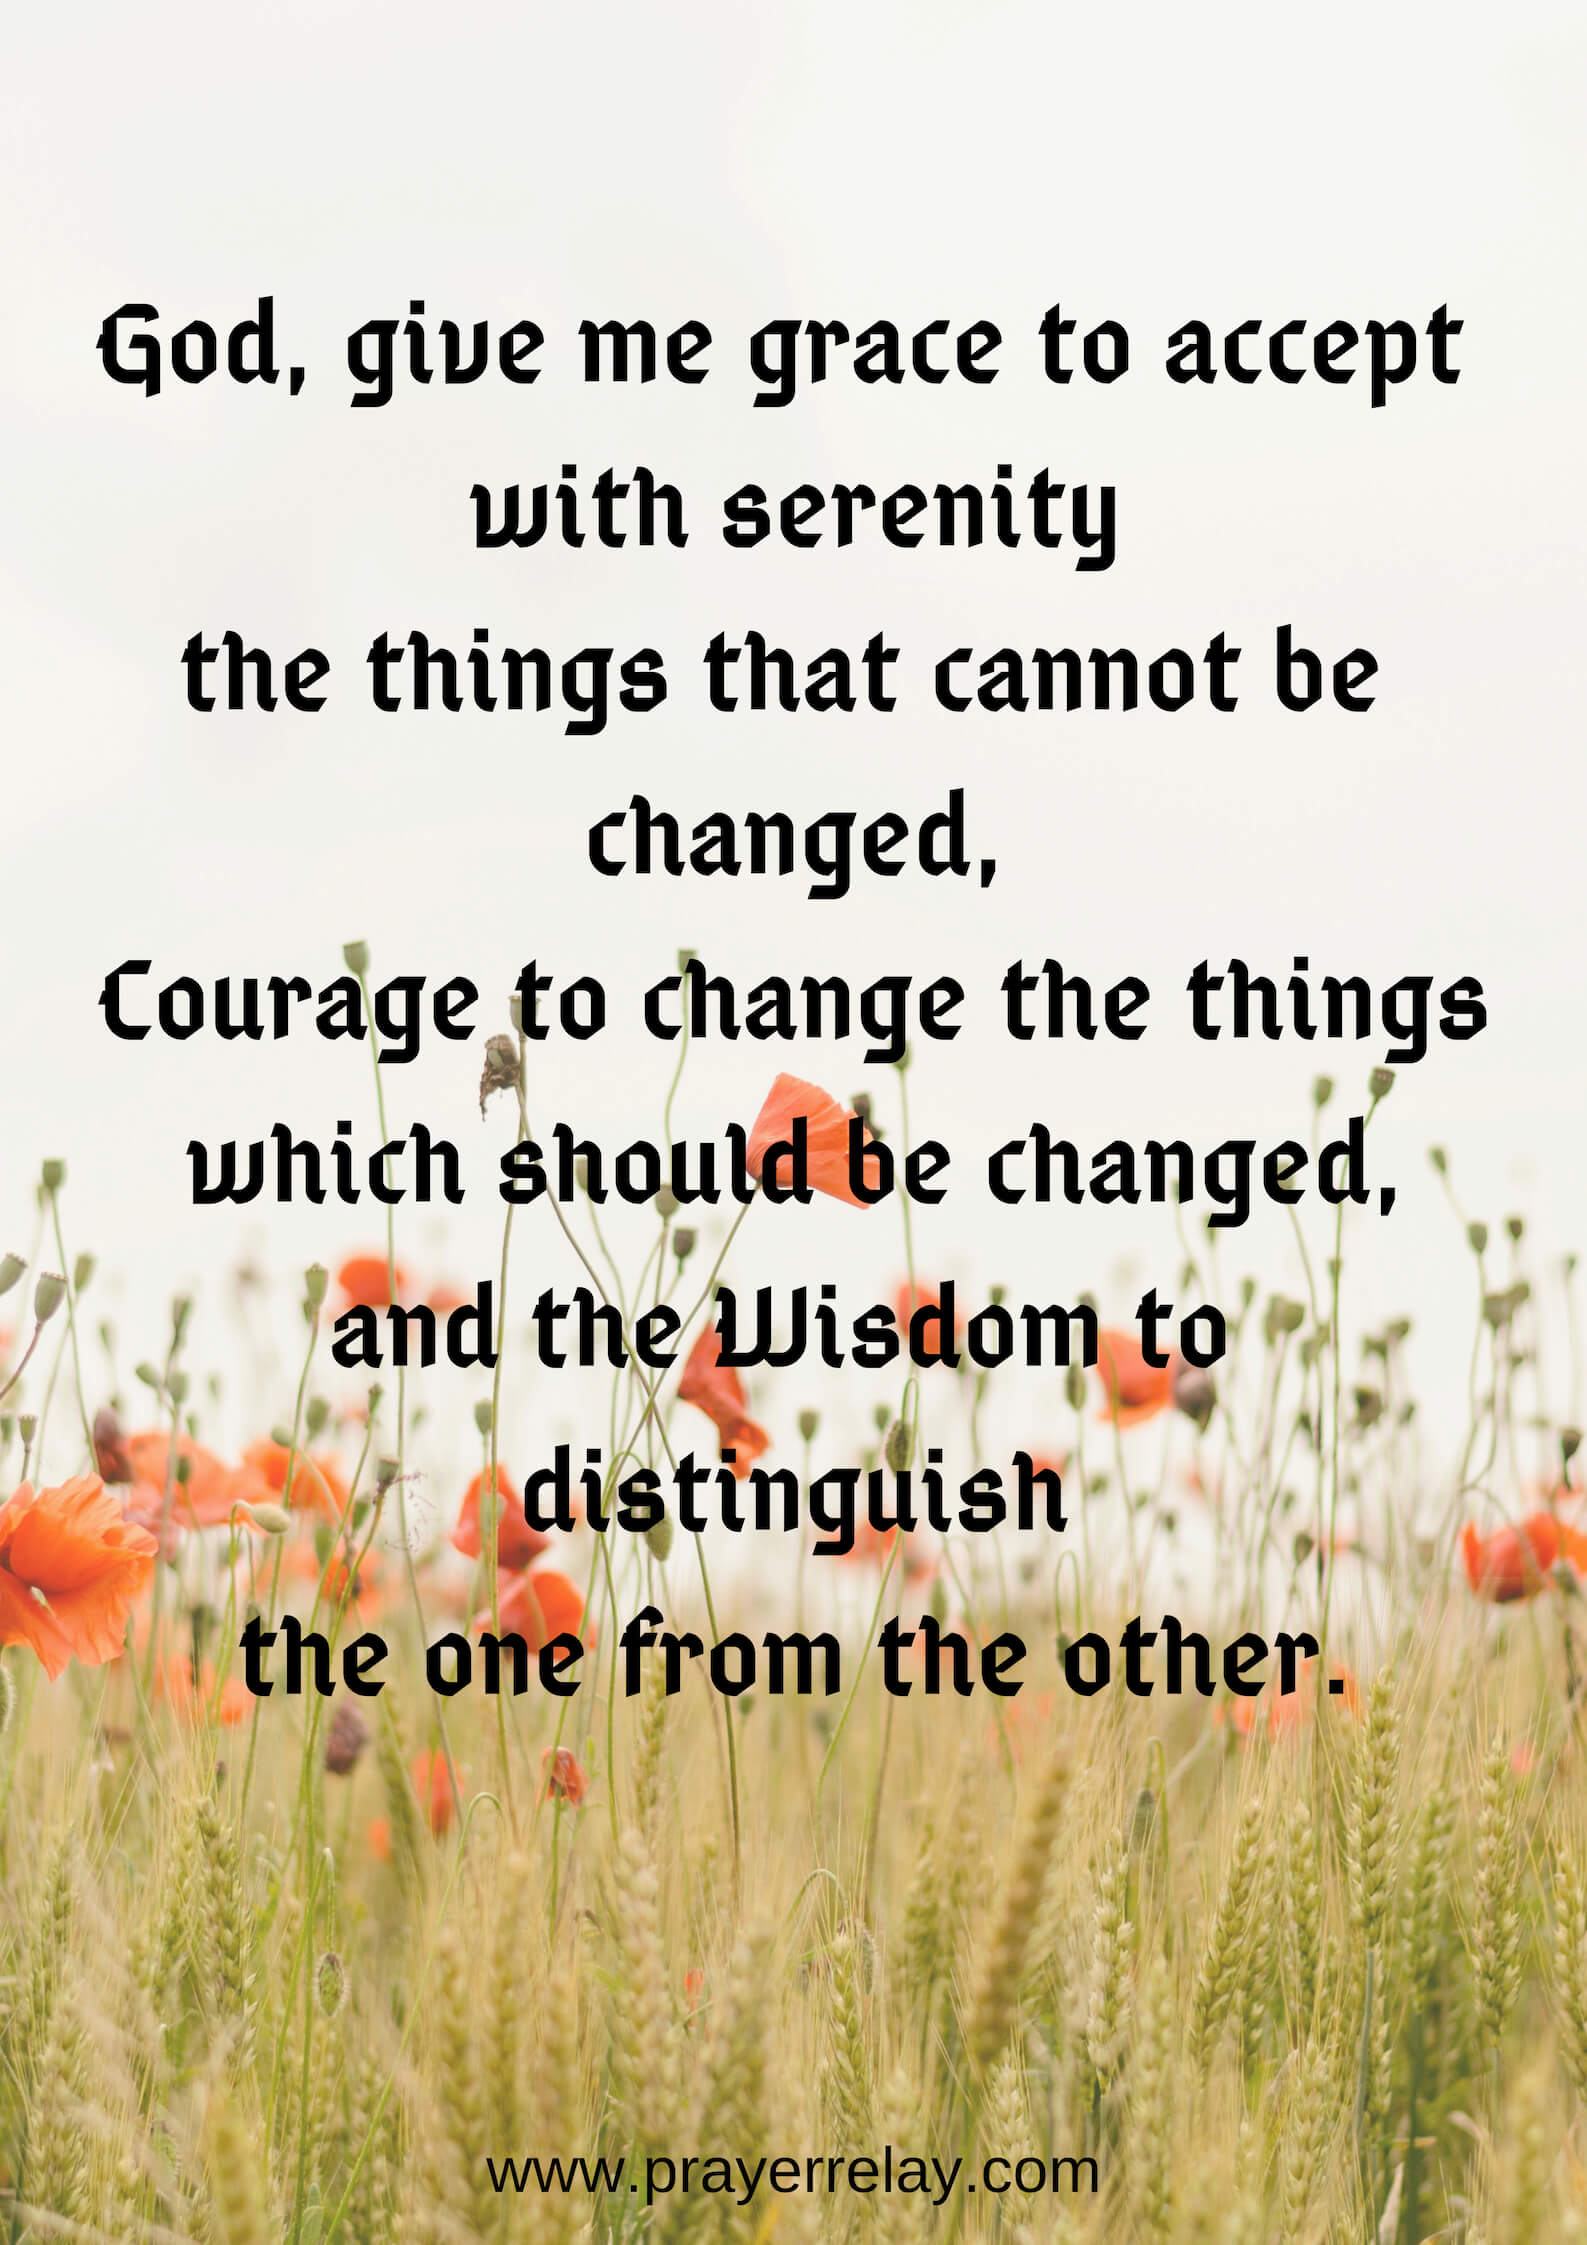 The Serenity Prayer Ultimate Guide #1 - The Prayer Relay ...